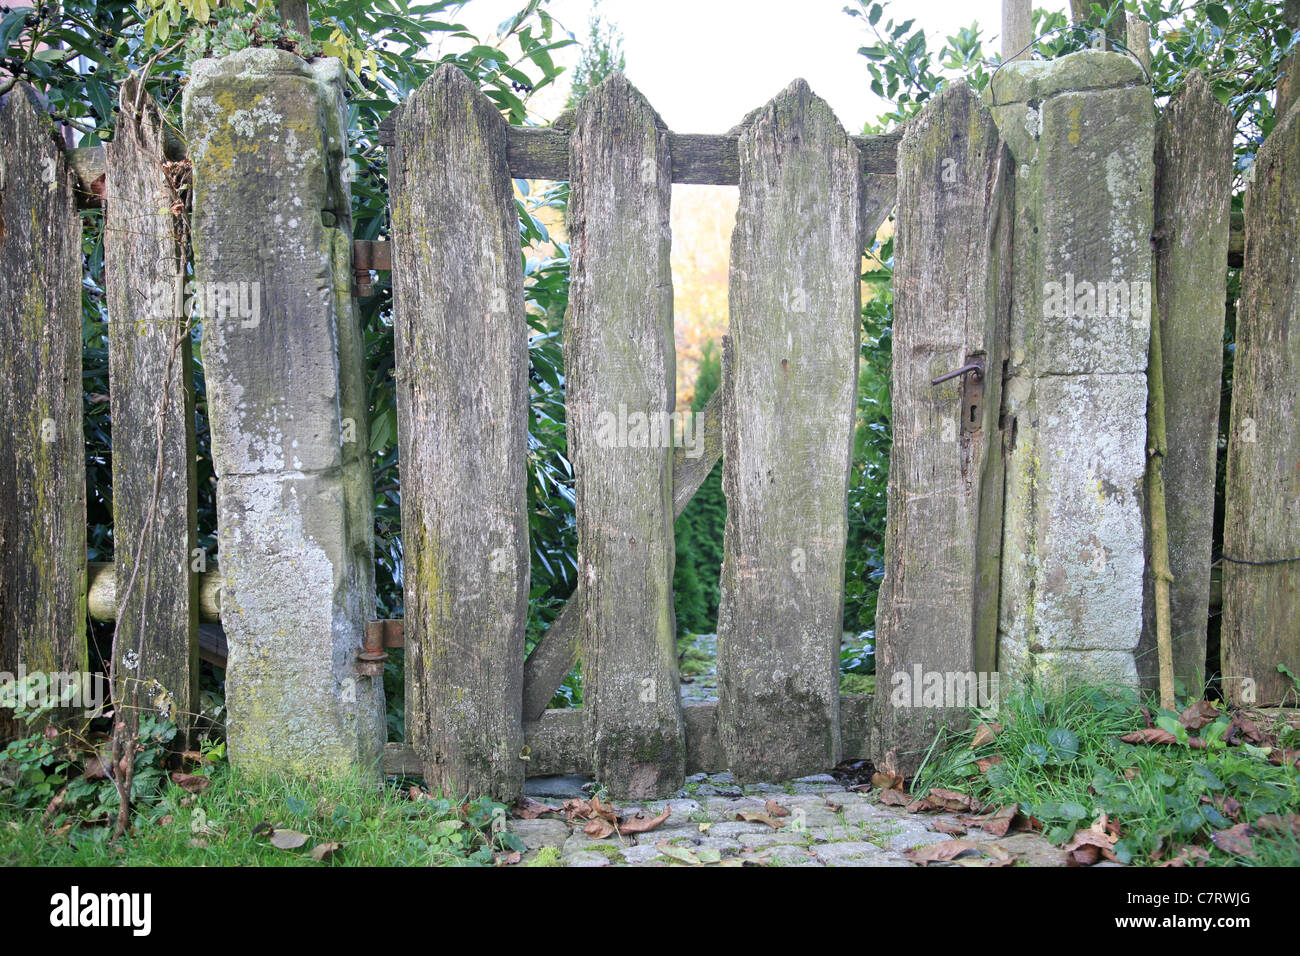 Old weathered garden gate and fence - Stock Image